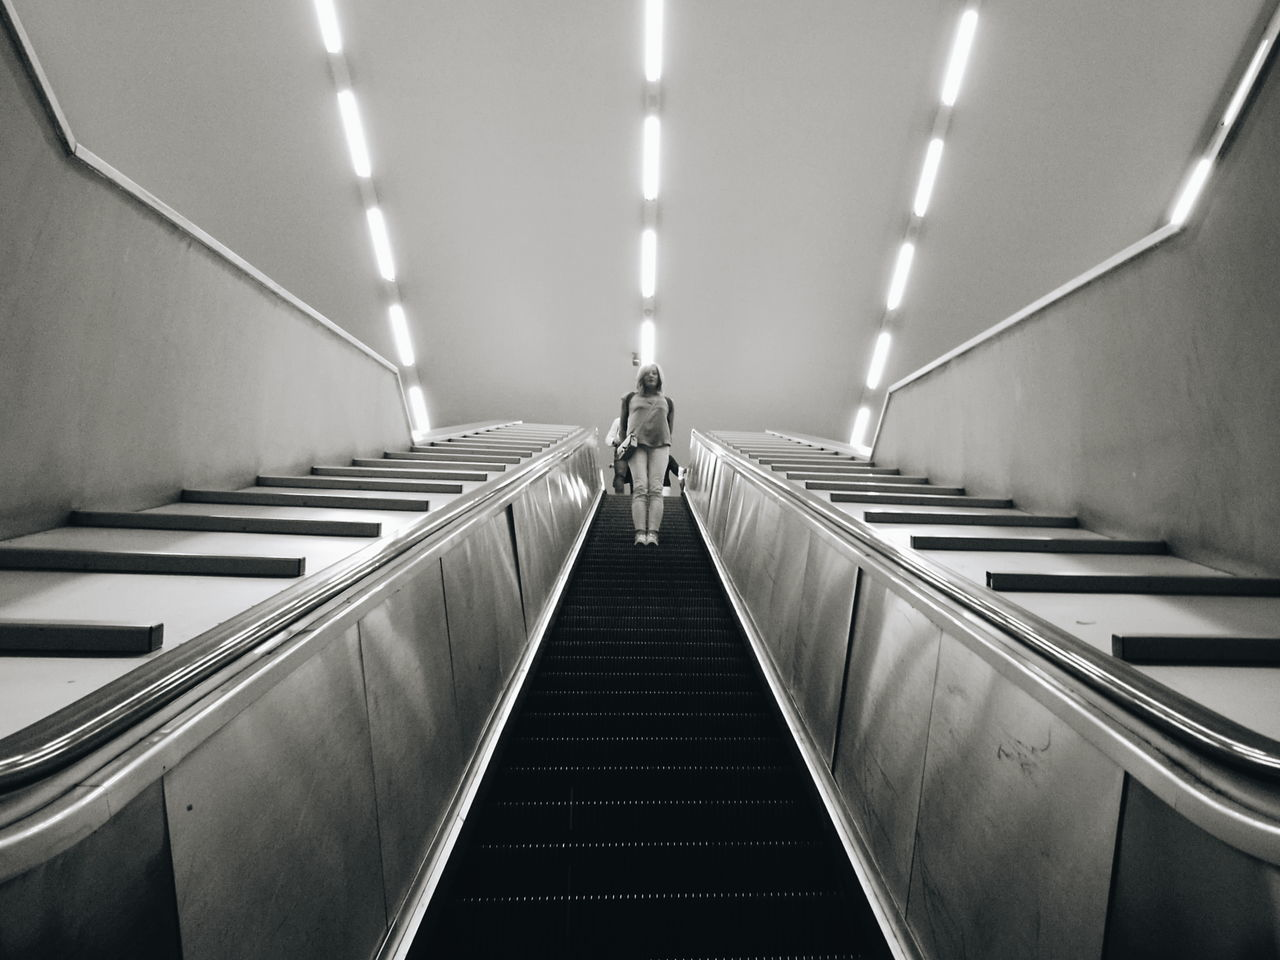 Escalator Steps And Staircases Transportation Subway Station Futuristic Walking Around Streetphotography Subway Platform VSCO City Life Youmobile TheMinimals (less Edit Juxt Photography) HuaweiP9 Napoli Fine Art Photography Metro Life Notes From Babylon Shootermag Huawei P9 Leica Napoli Street Discover Italy / With Ale Taking Photos Blackandwhite Black And White Blackandwhite Photography